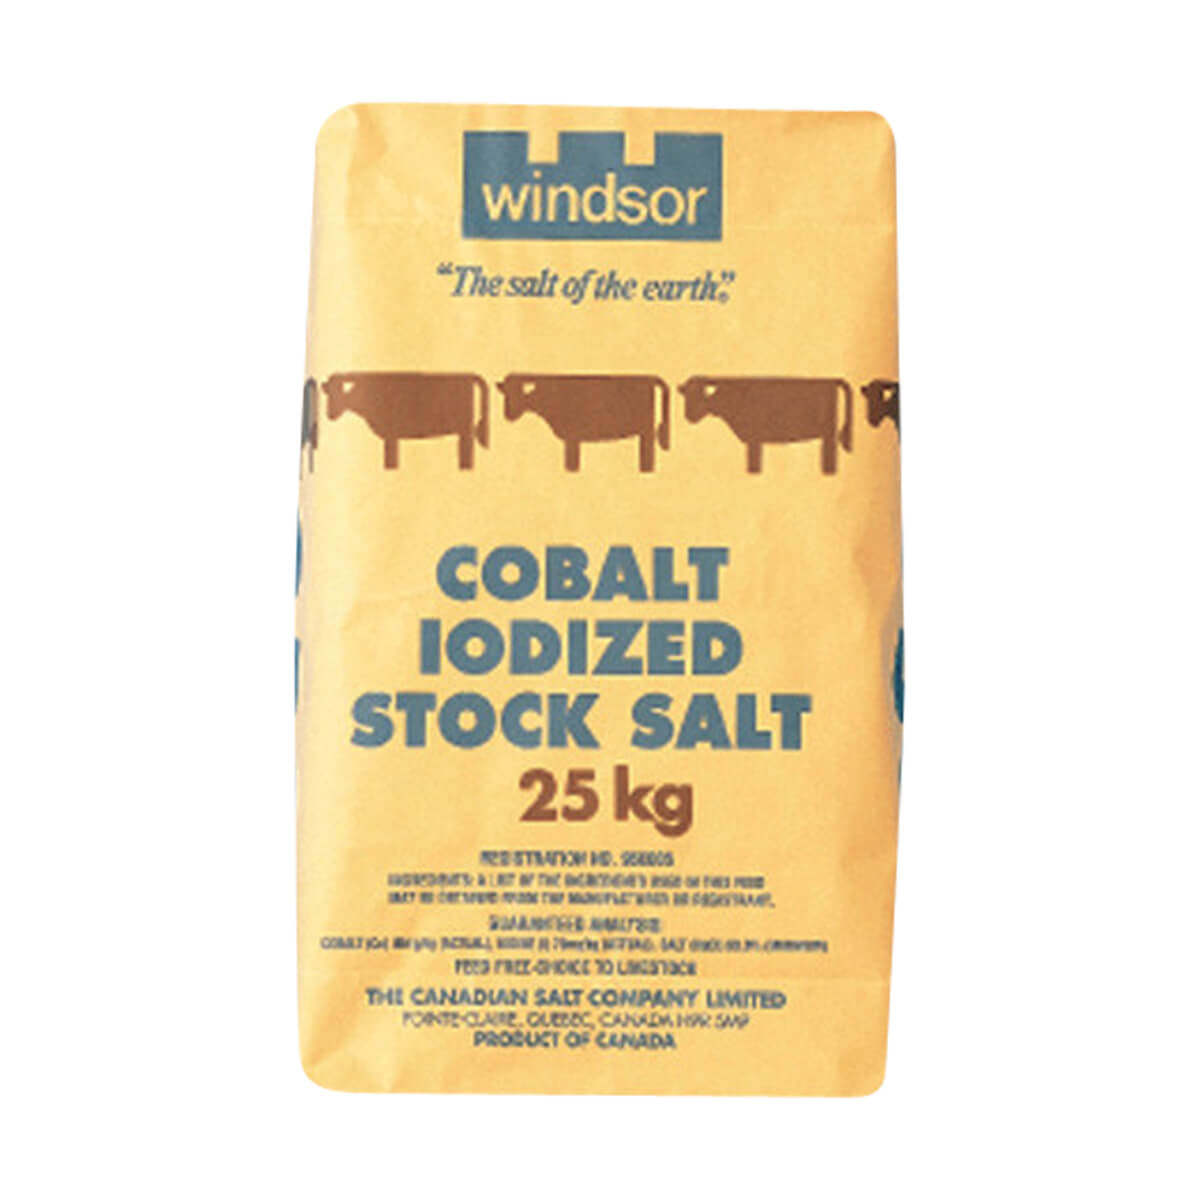 Windsor Cobalt Iodized Stock Salt - 25 kg - Bag